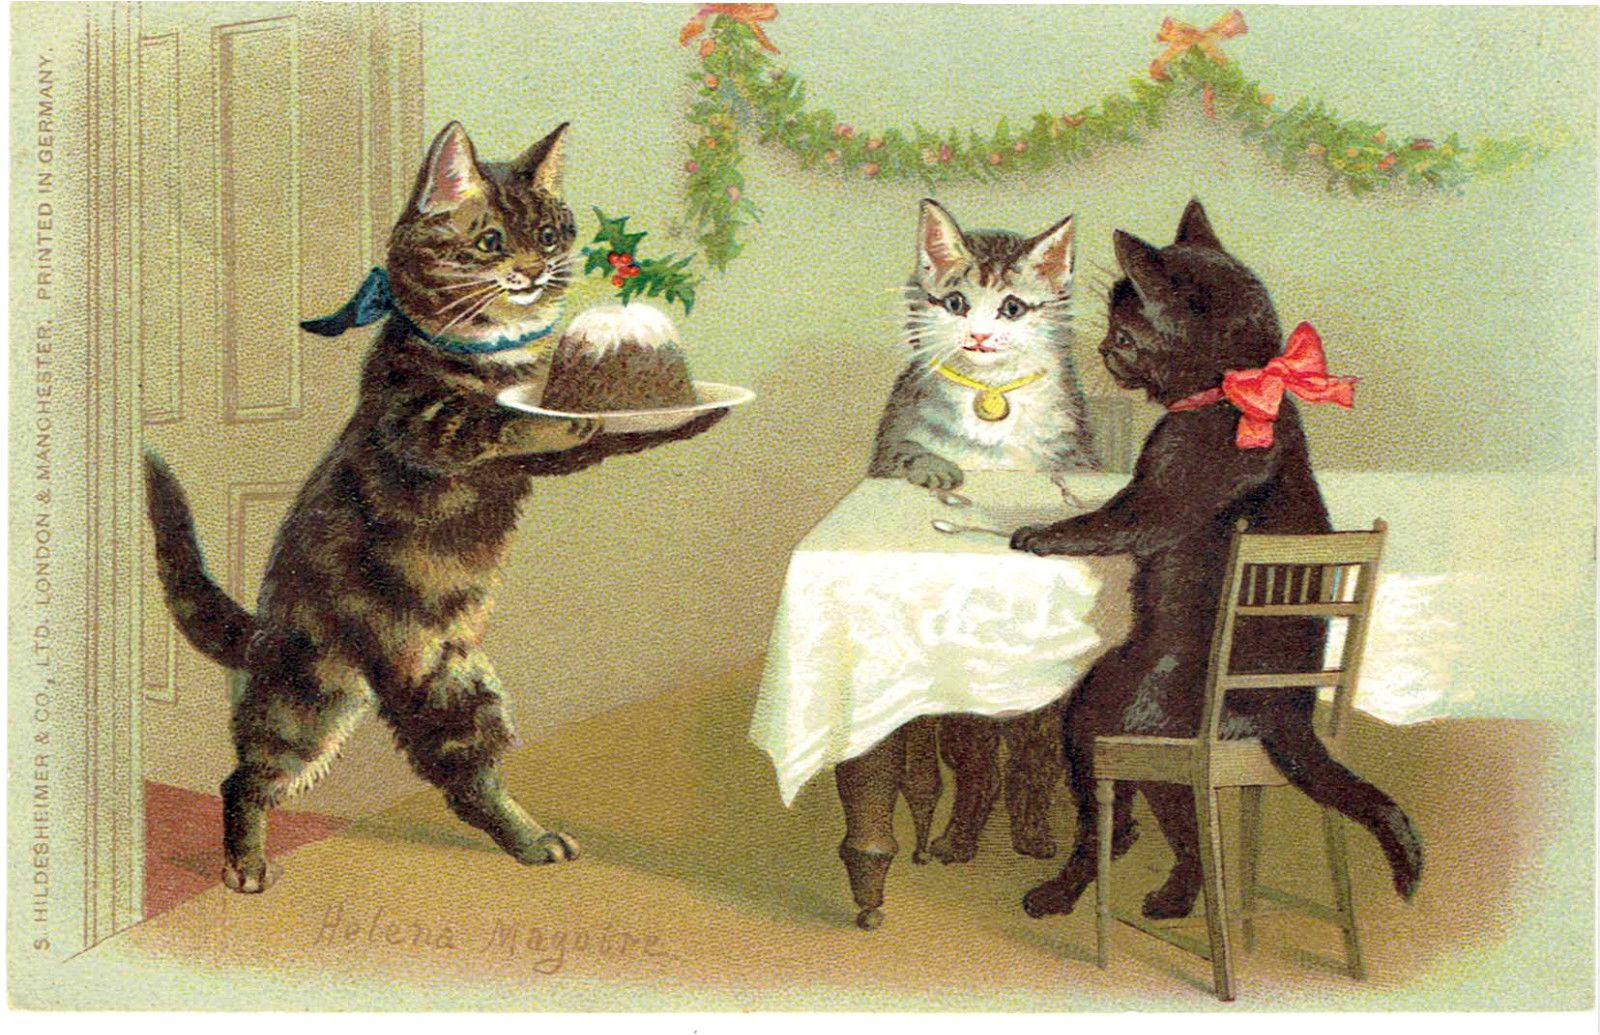 Pin by Eugene on クリスマス カード Cats, Cat art, Vintage cat